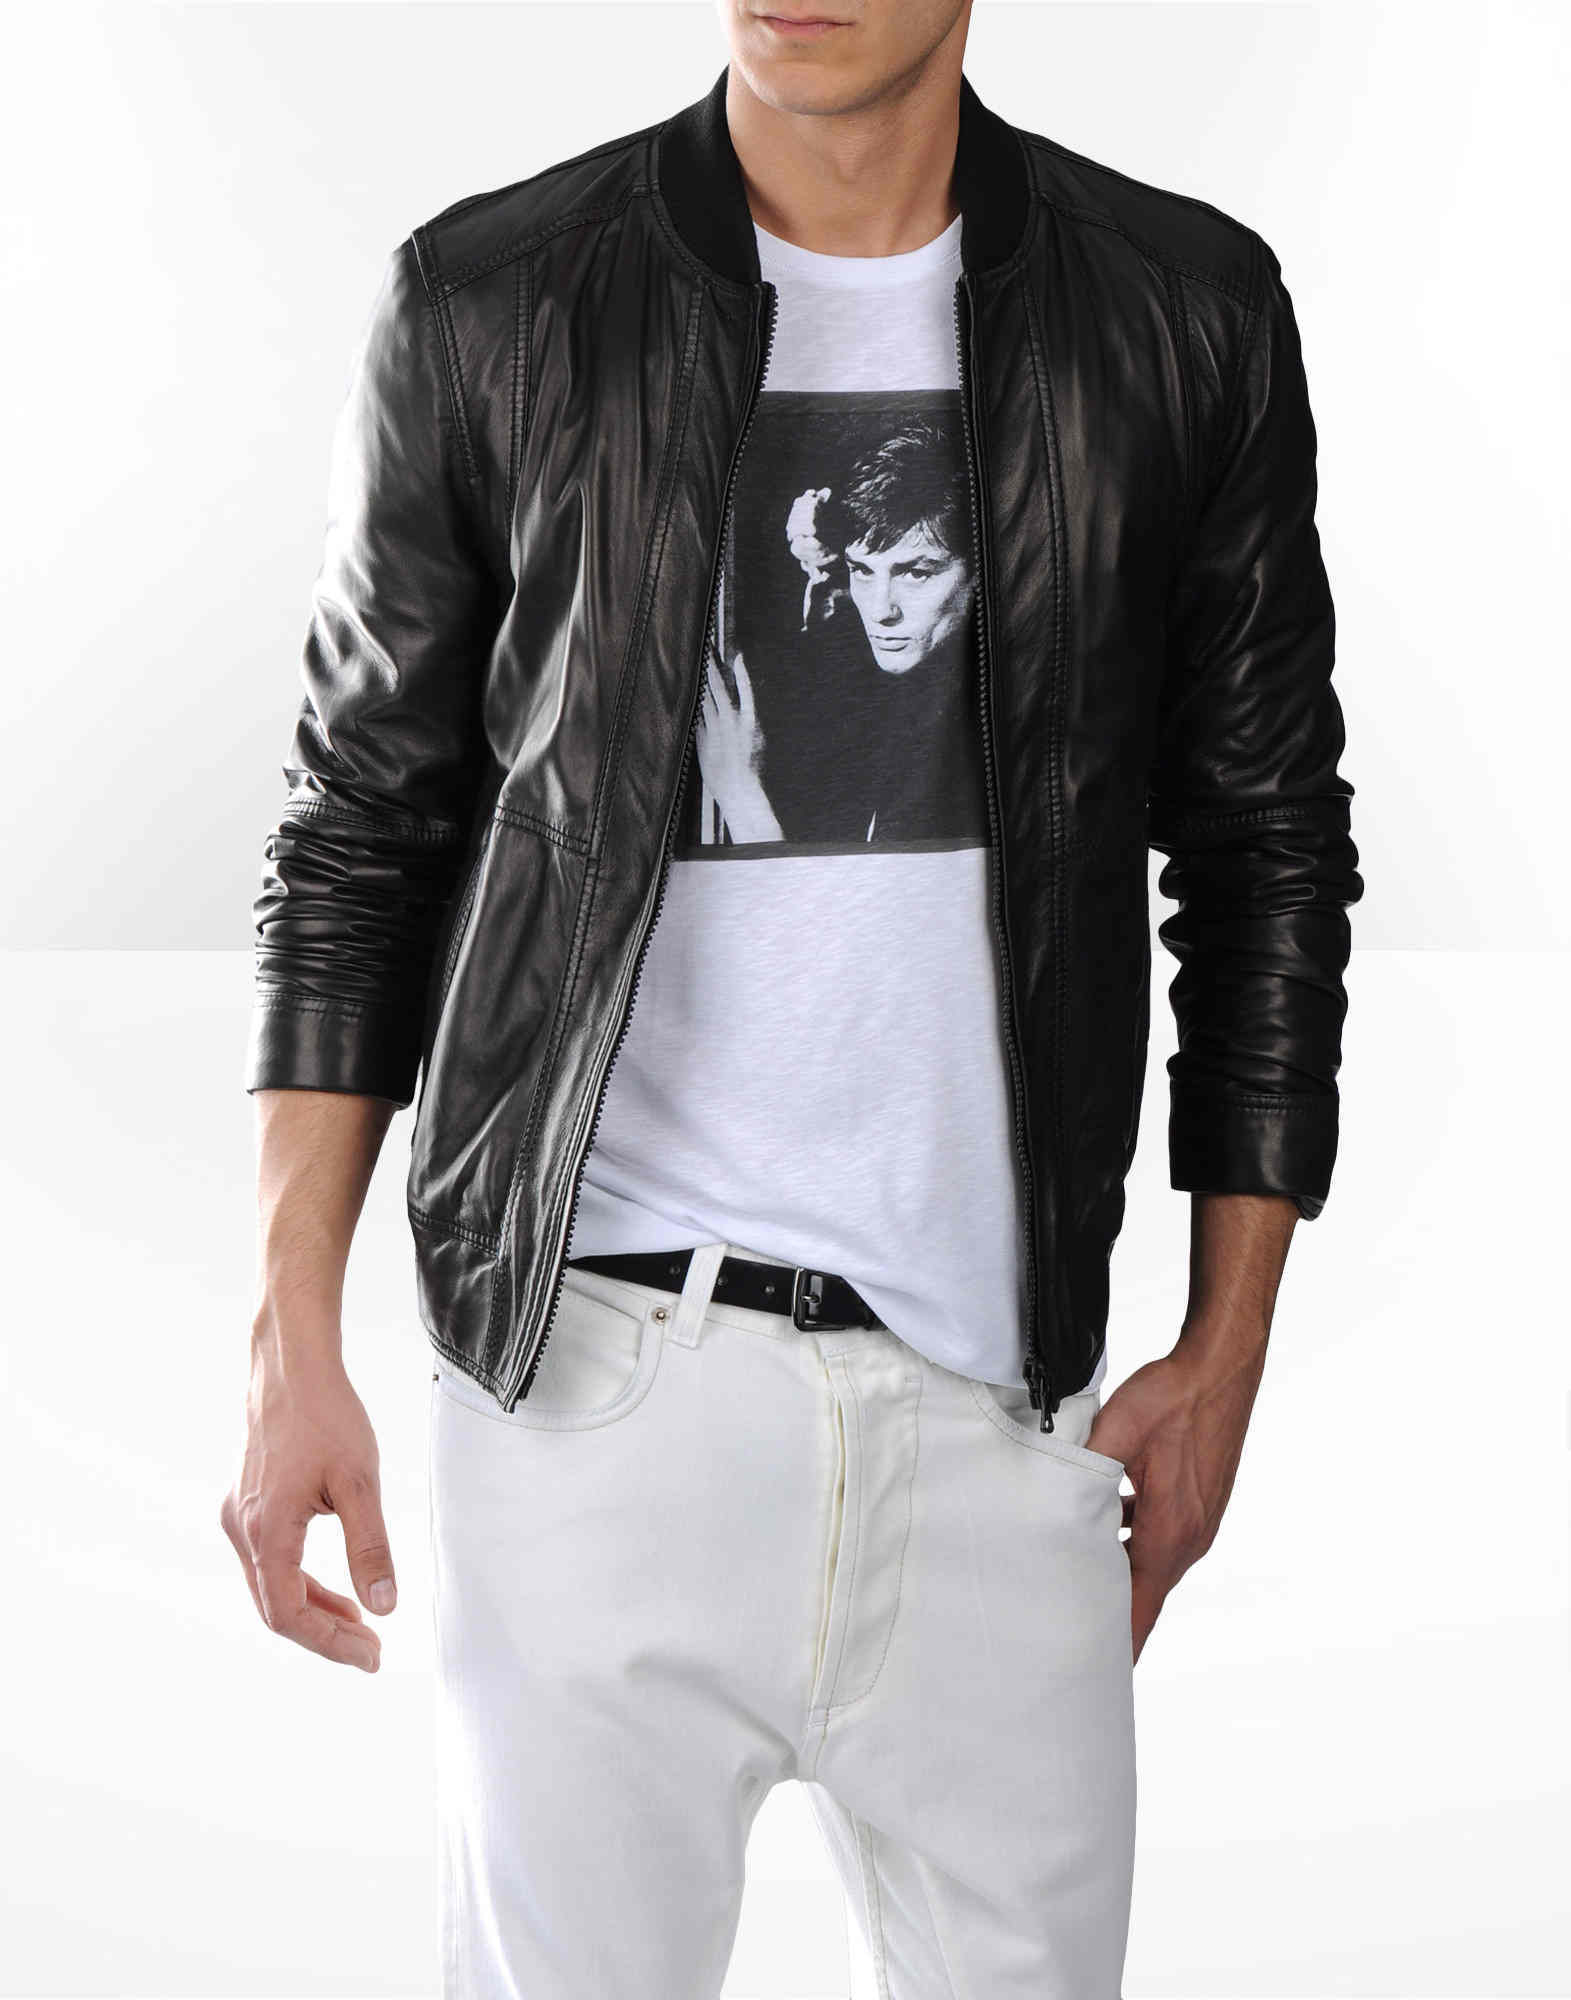 DG Mens Black Leather Jacket Mens Fashion